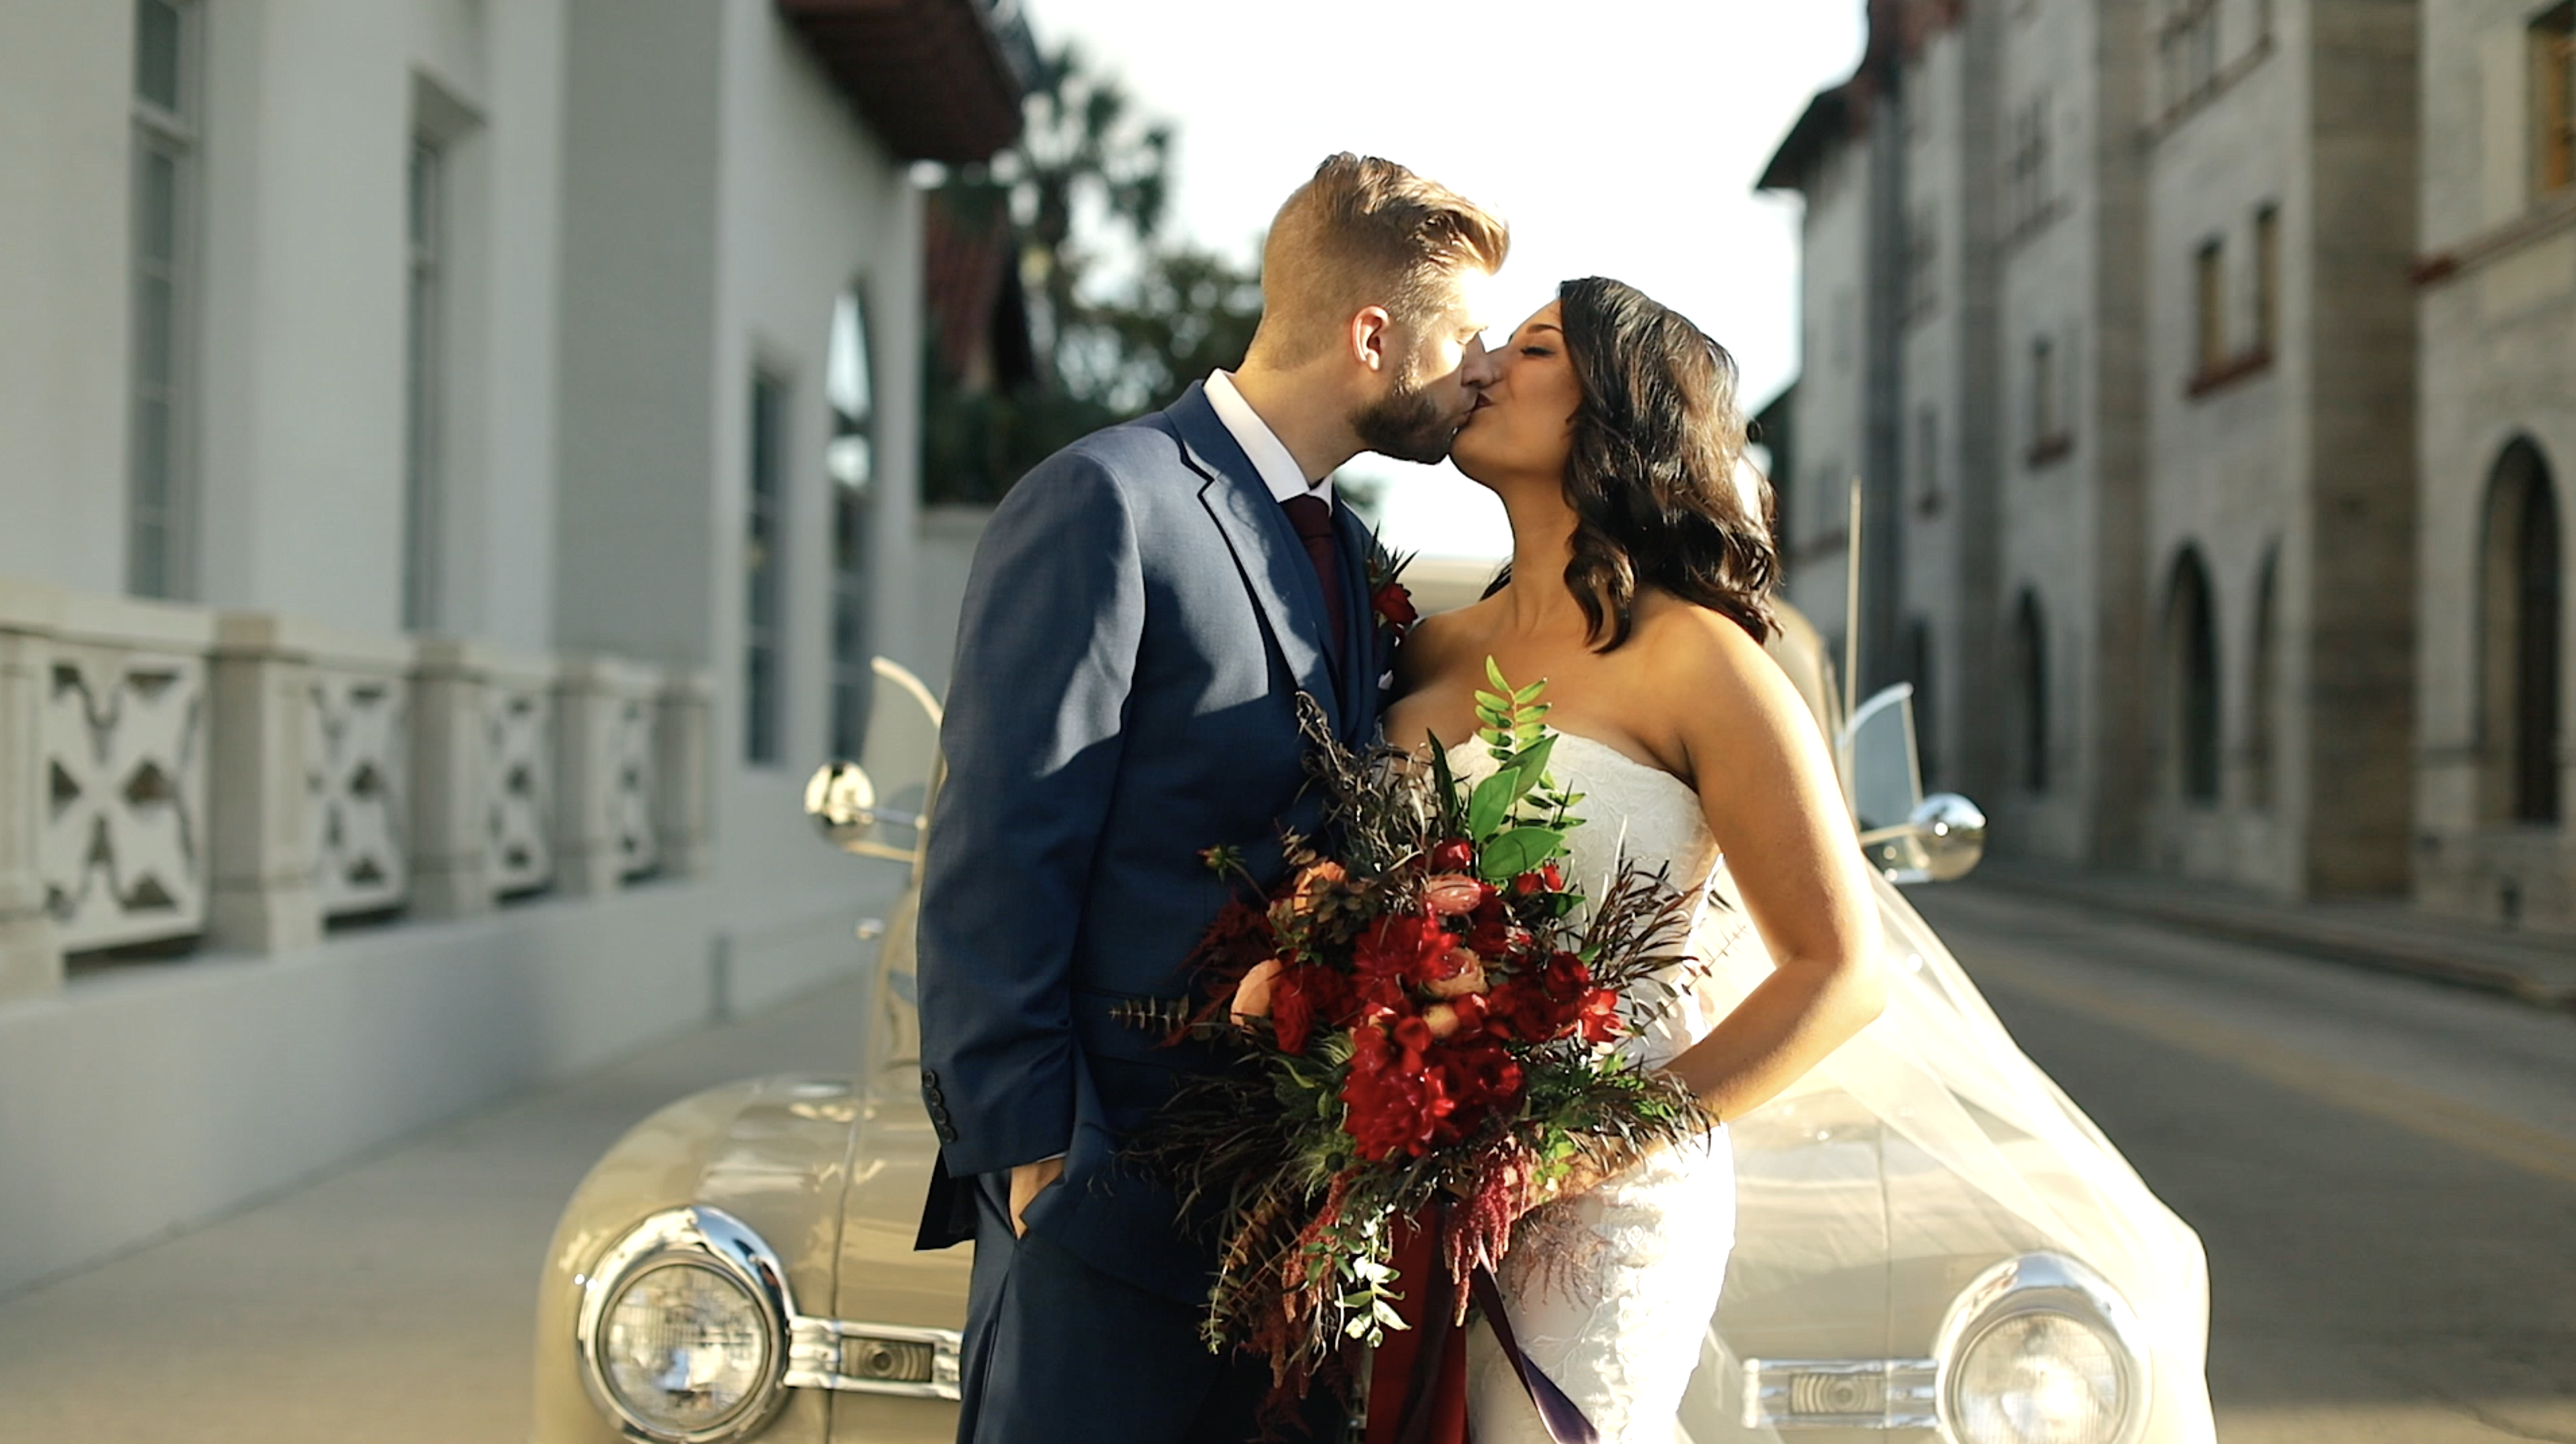 Erica + Carson | St. Augustine, Florida | Treasury on the Plaza